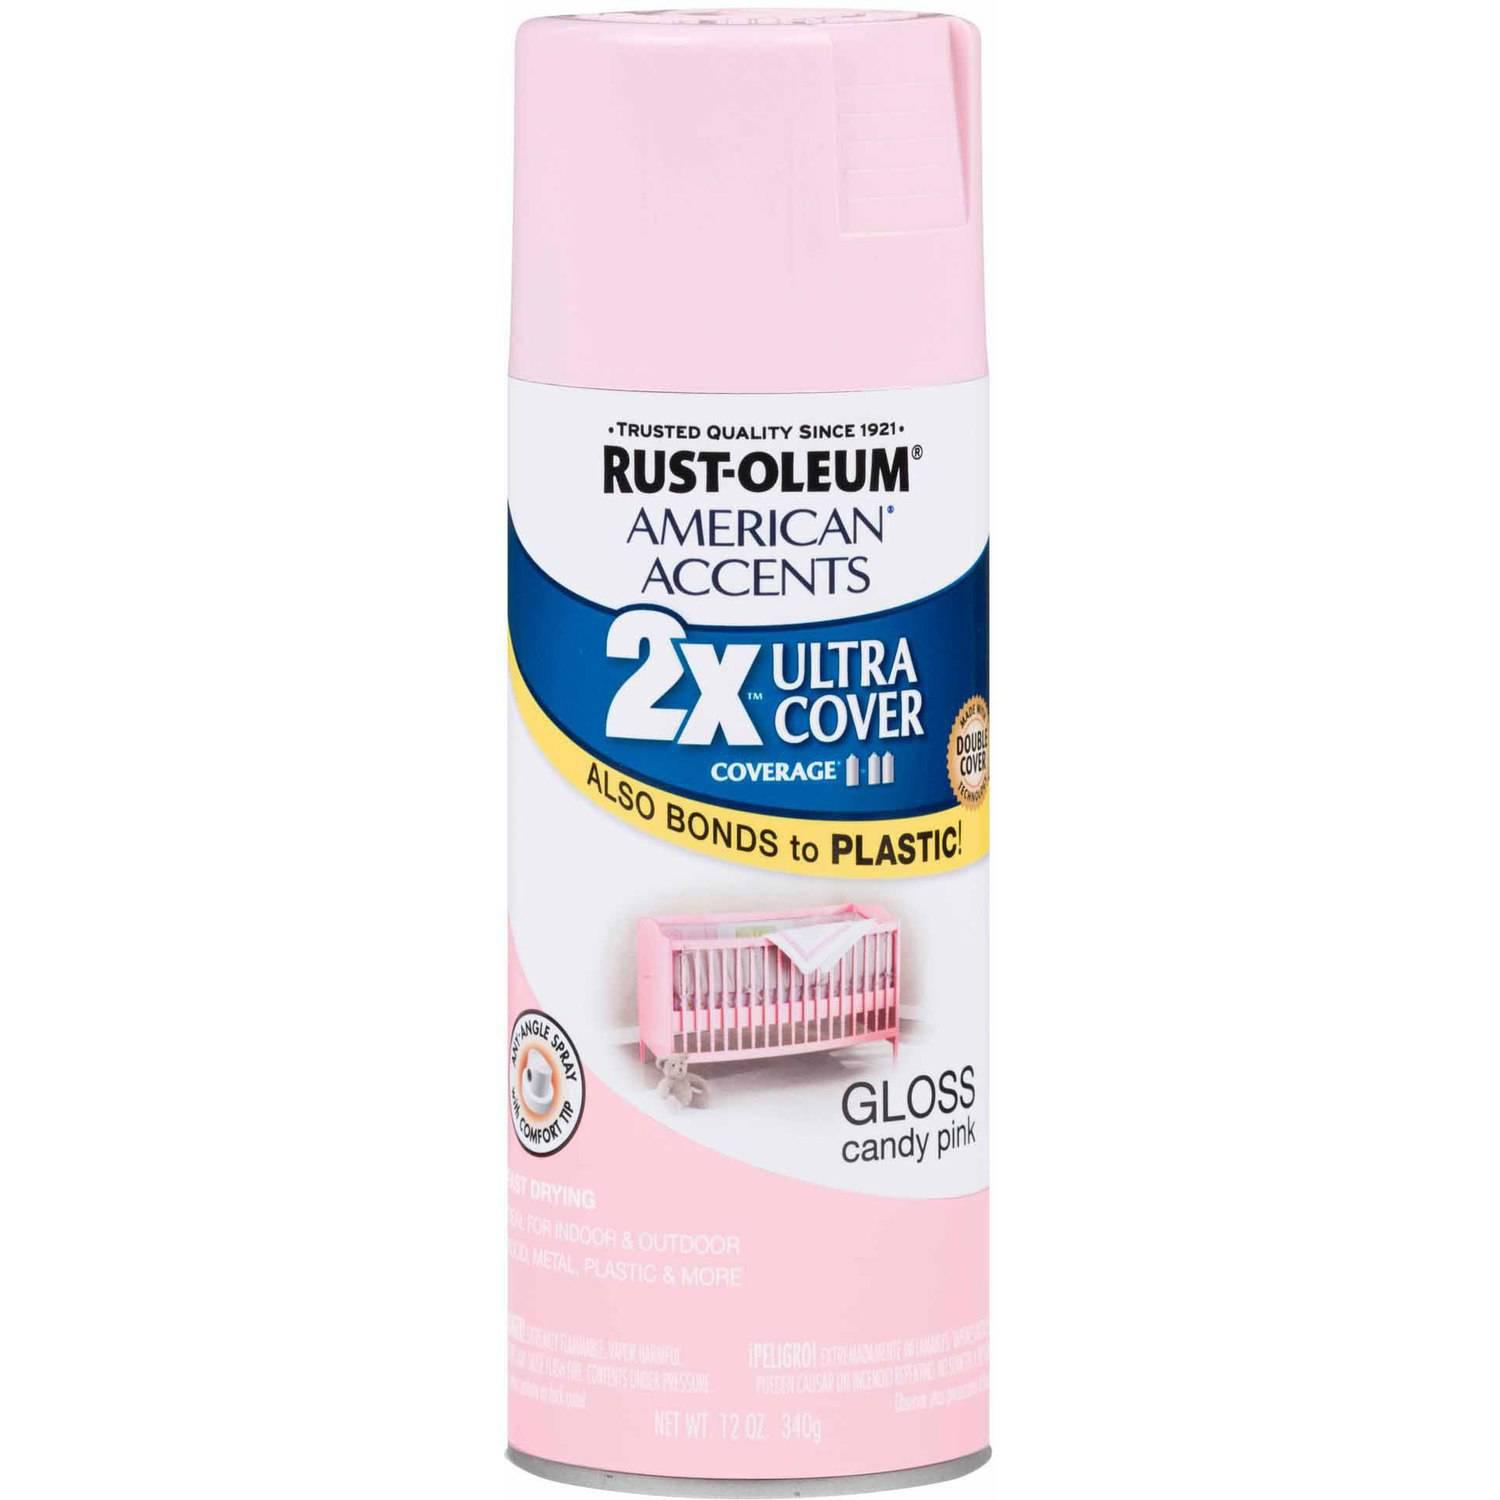 Spray Paint Colors Walmart Part - 18: Rust-Oleum American Accents Ultra Cover 2X Gloss Candy Pink Spray Paint And  Primer In 1, 12 Oz - Walmart.com